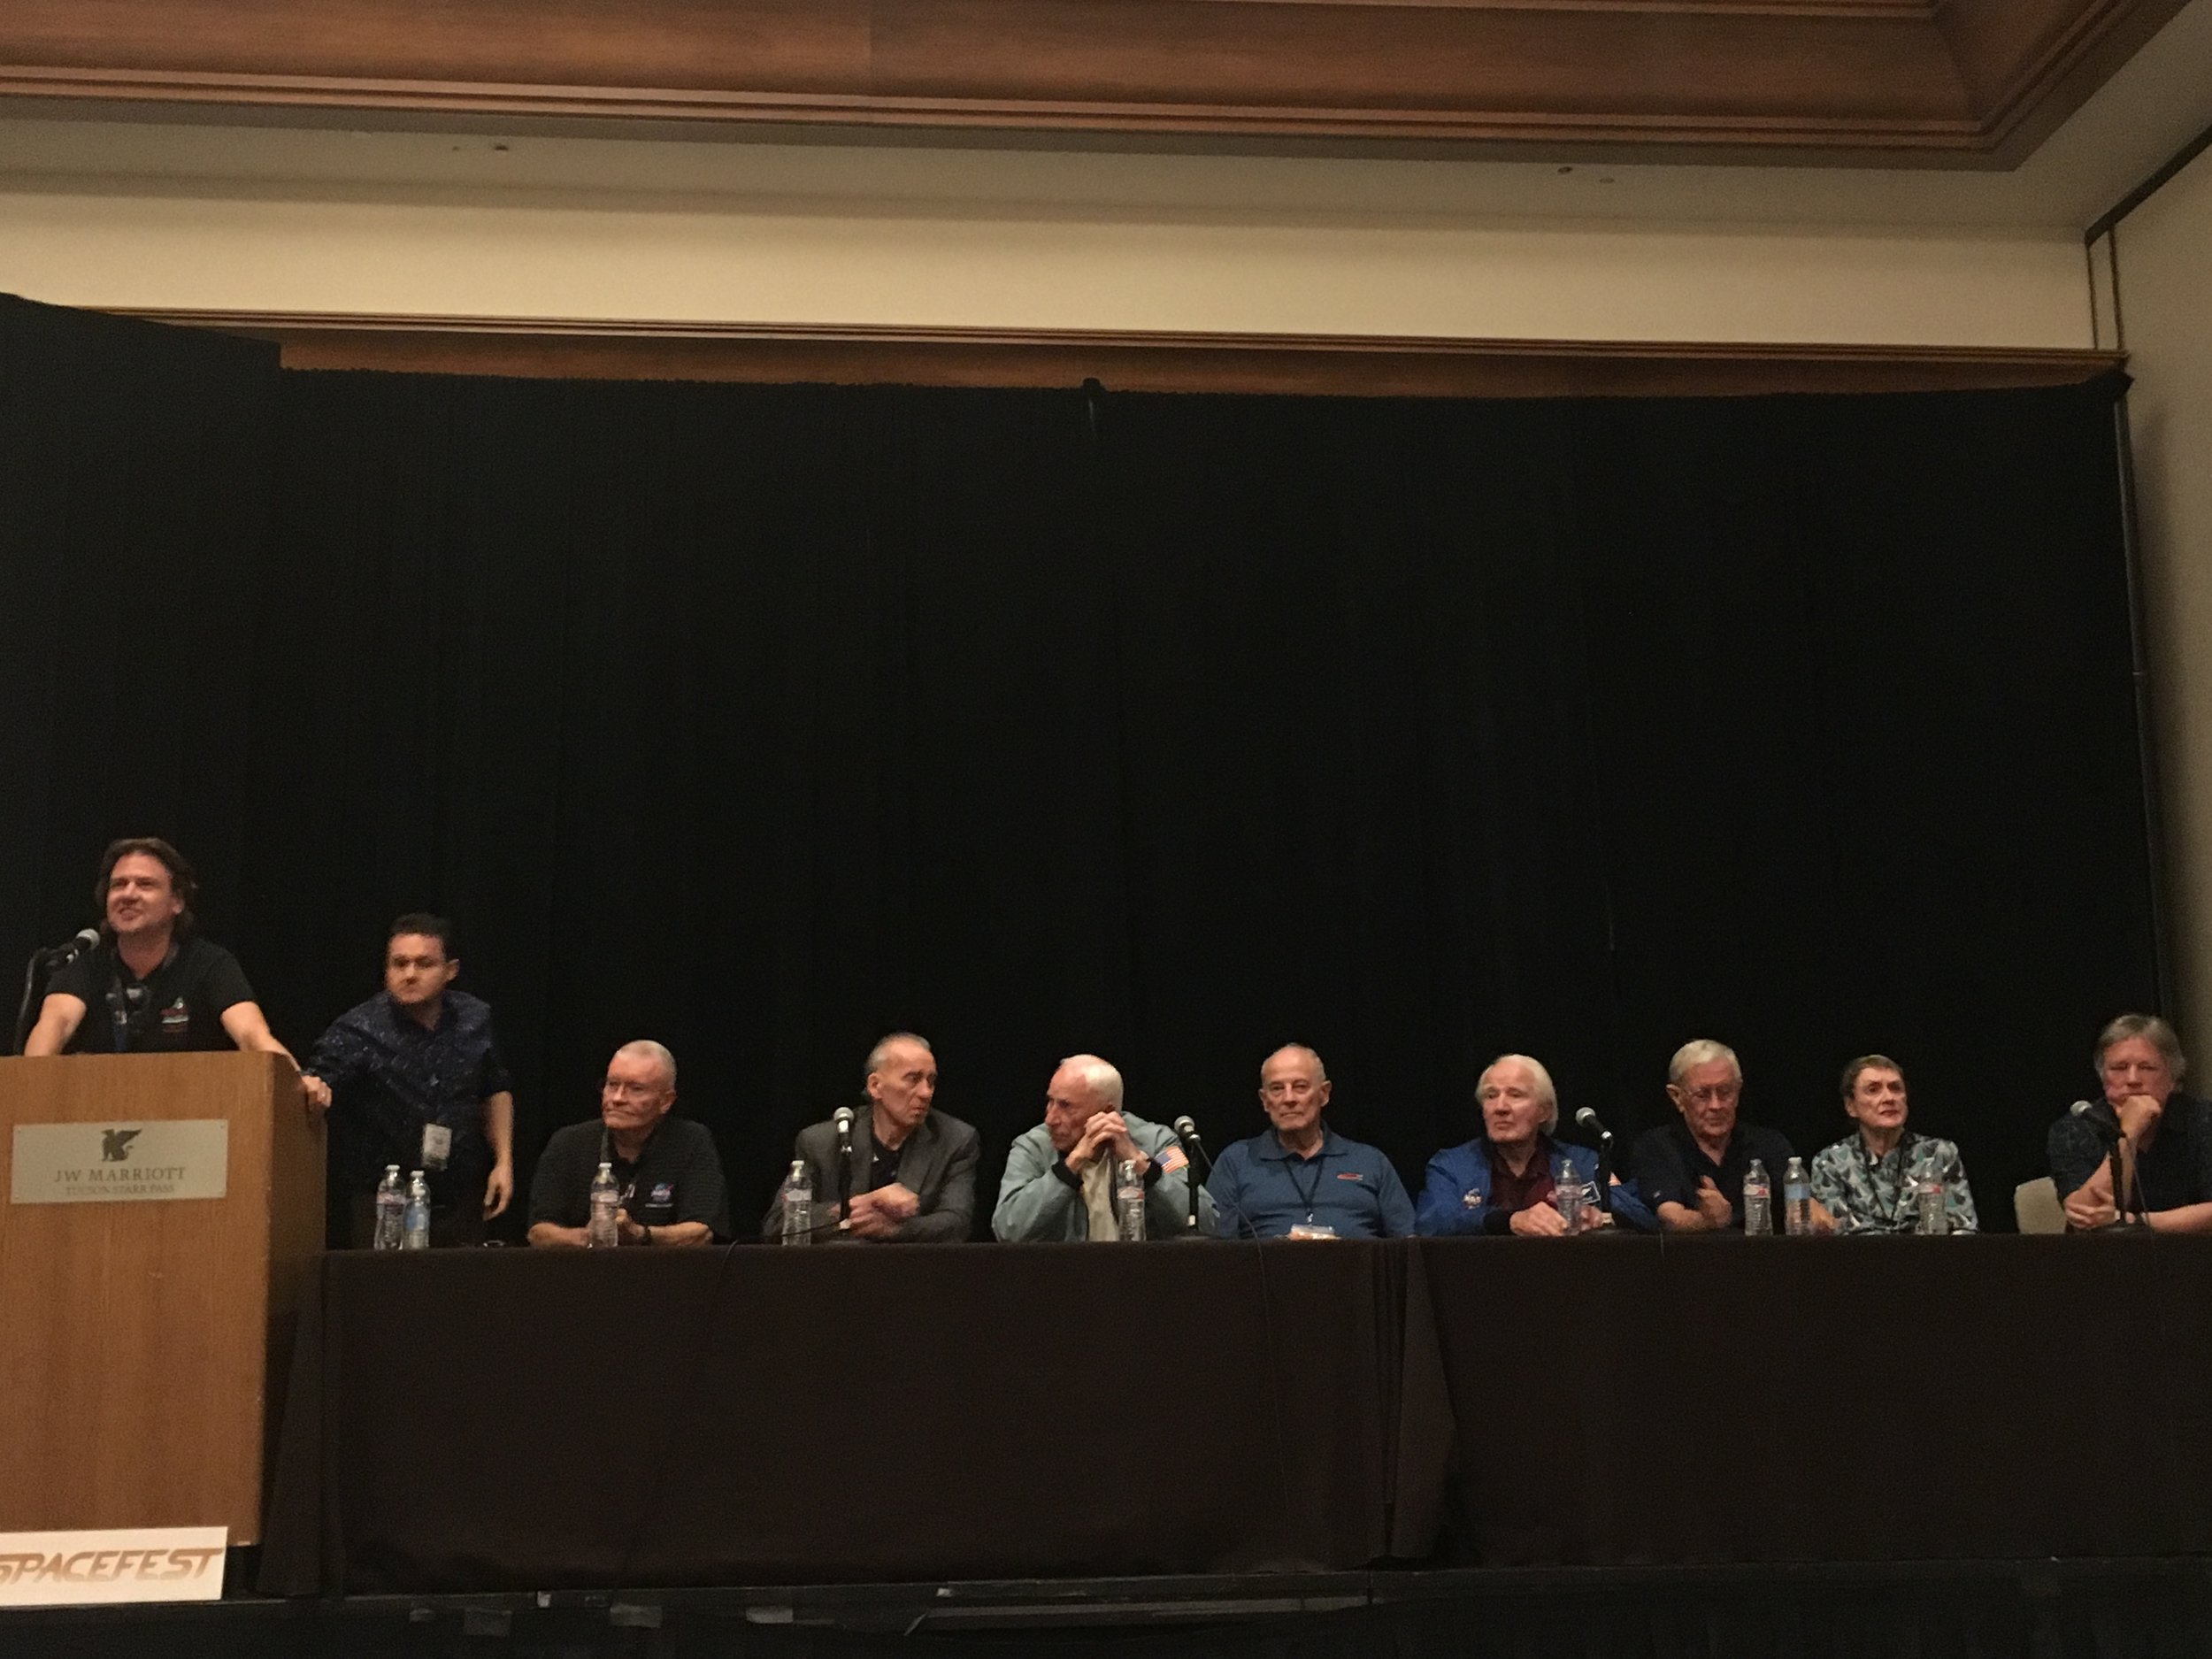 L-R: Spacefest staff/astronomer Nick Howes, moderator/space historian Francis French, astronauts Fred Haise, Walt Cunningham, Al Worden, Jack Lousma, Vance Brand, Charlie Duke, astronaut nurse Dee O'Hara, and Rick Armstrong (son of Neil).